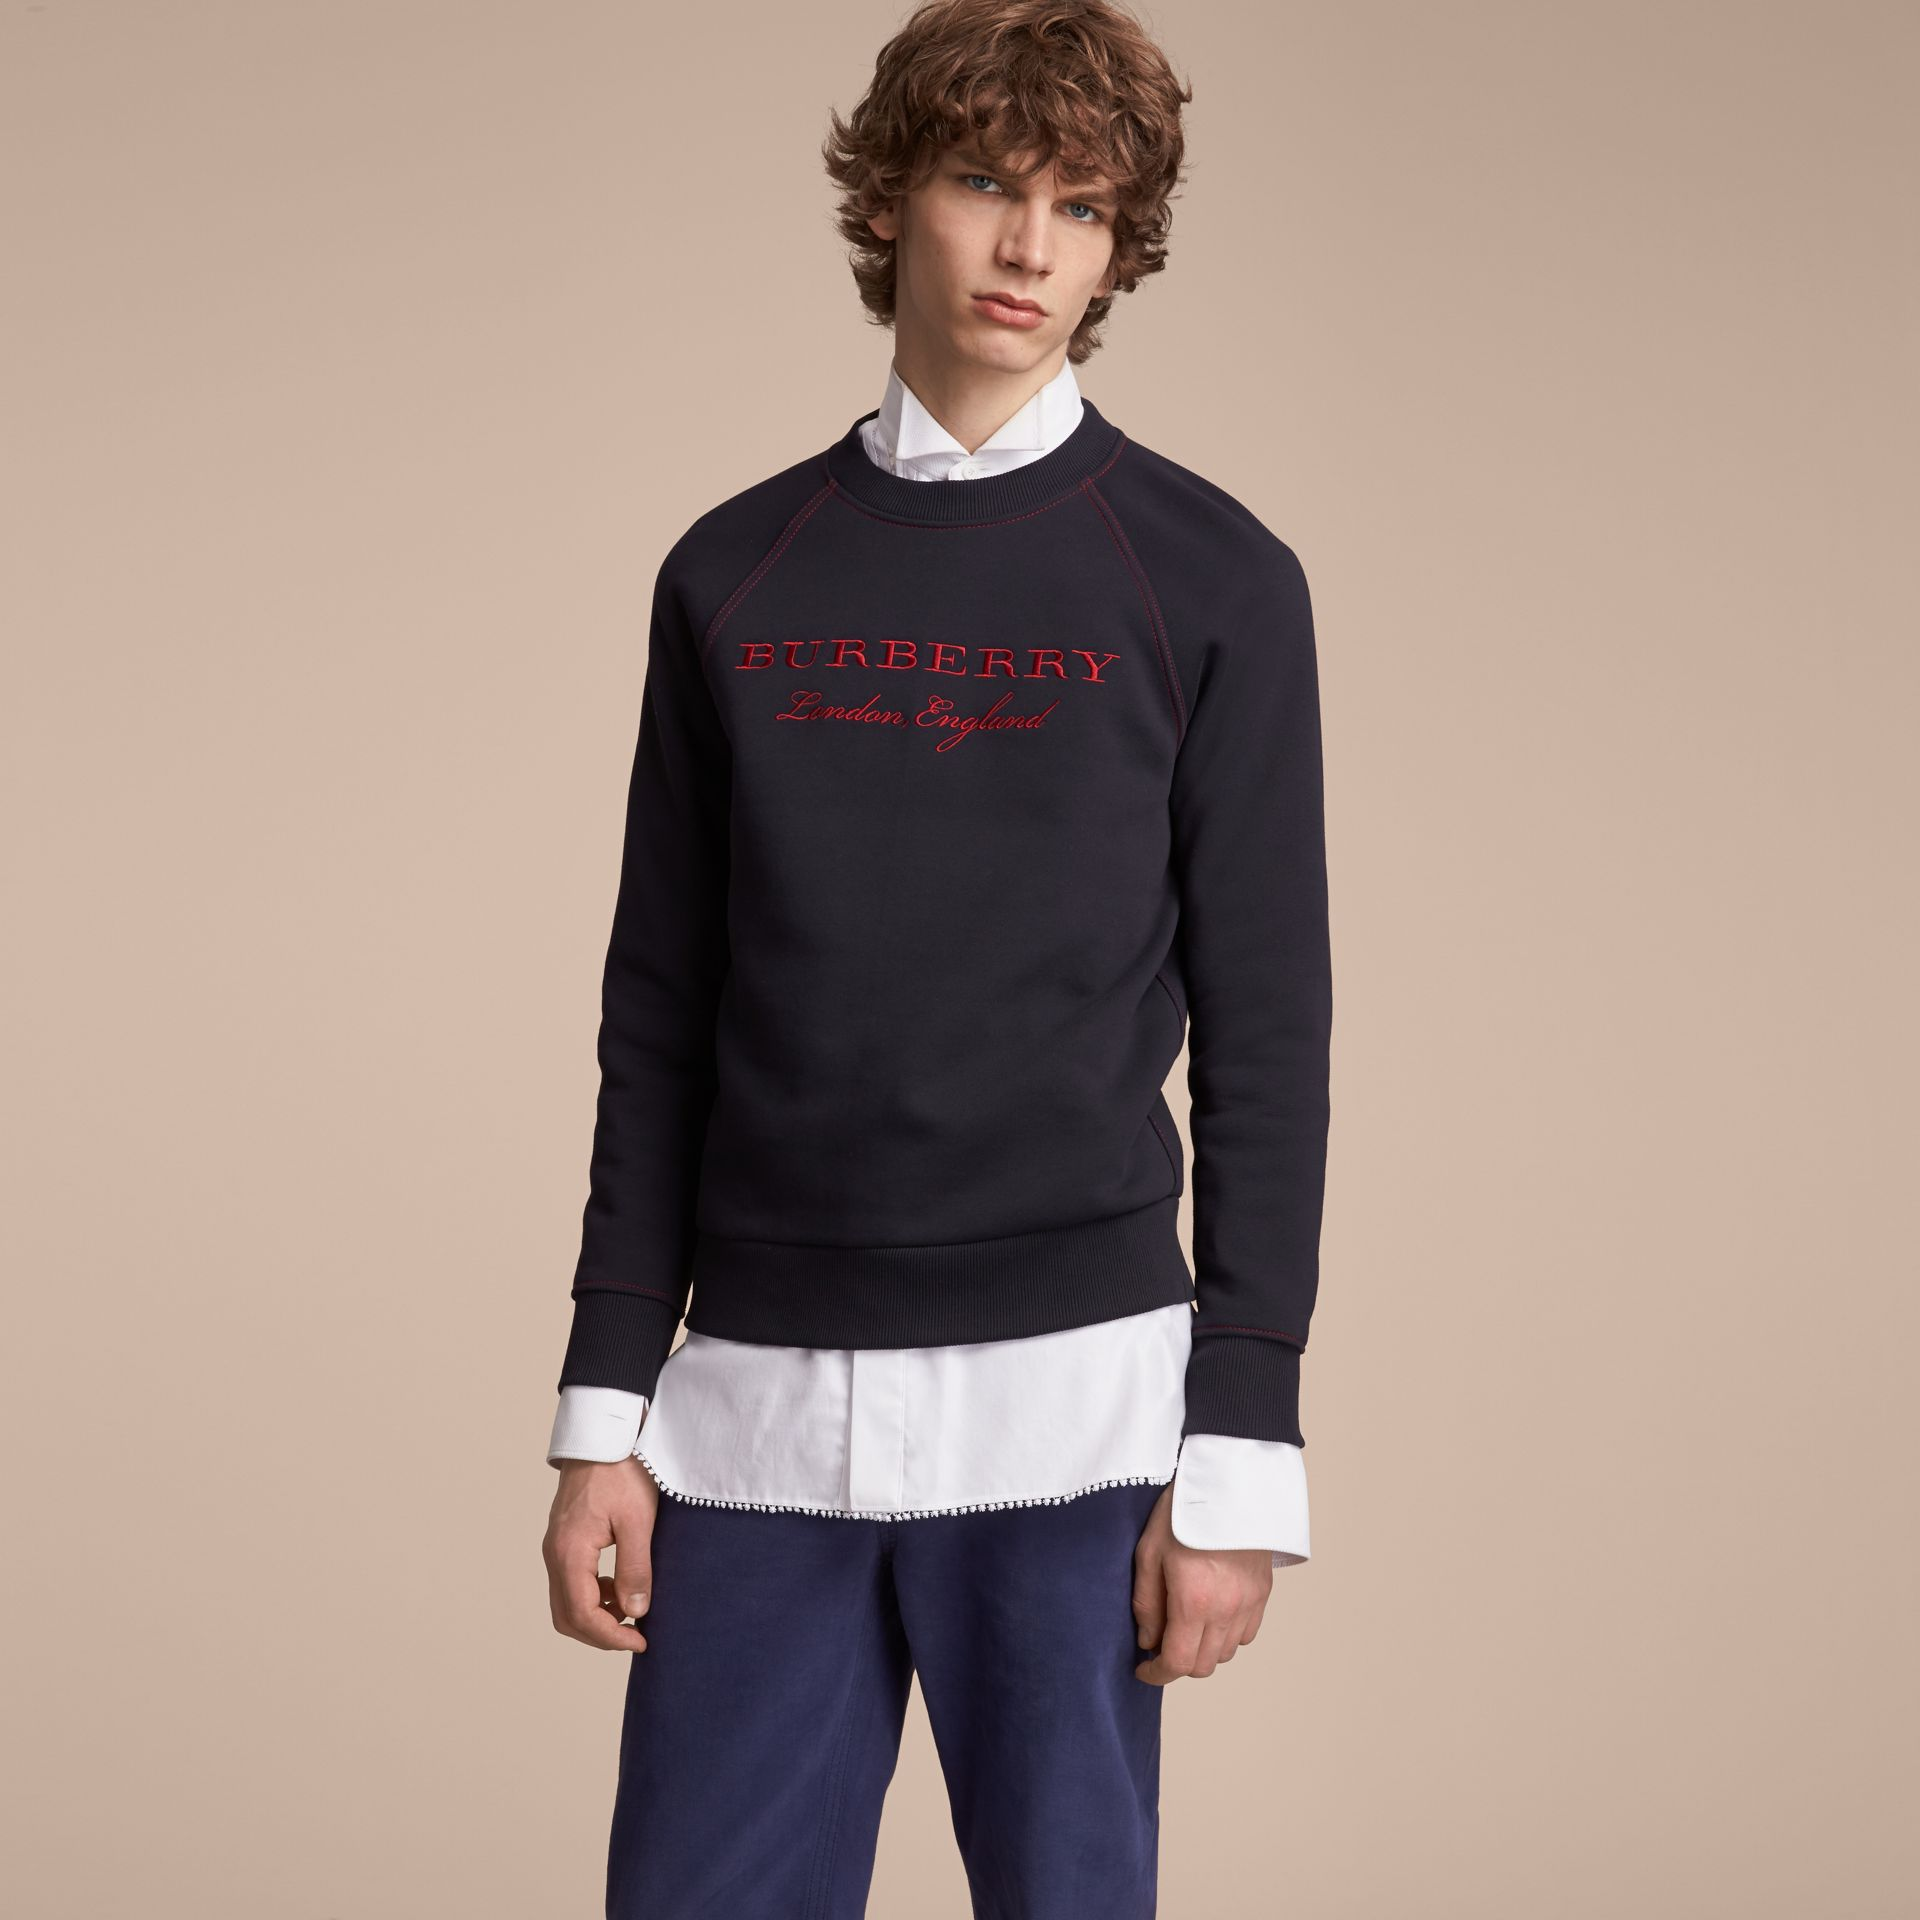 Embroidered Jersey Sweatshirt in Navy - Men | Burberry - gallery image 6